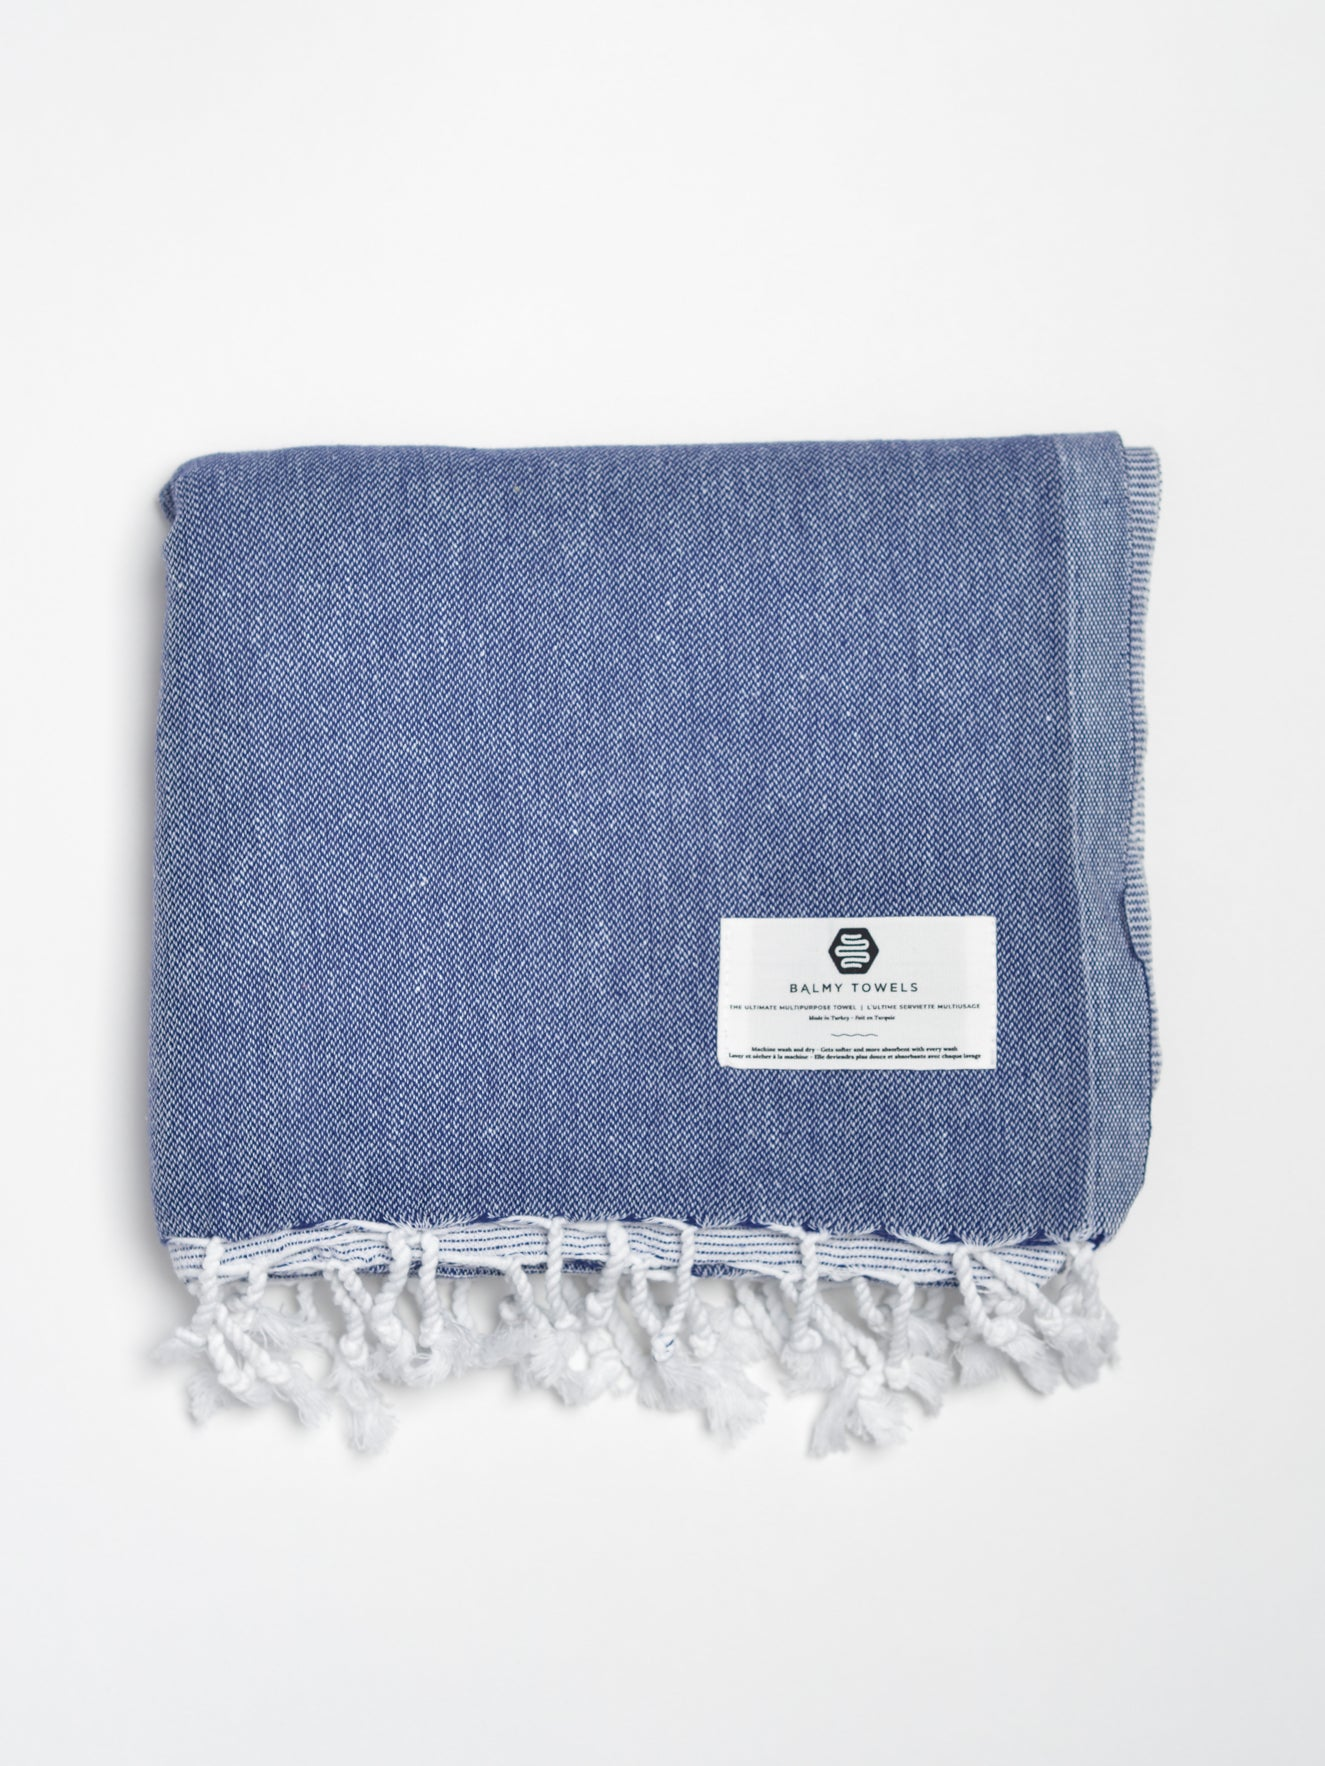 Beach and bath Turkish towel in a gradient navy blue to light blue colour